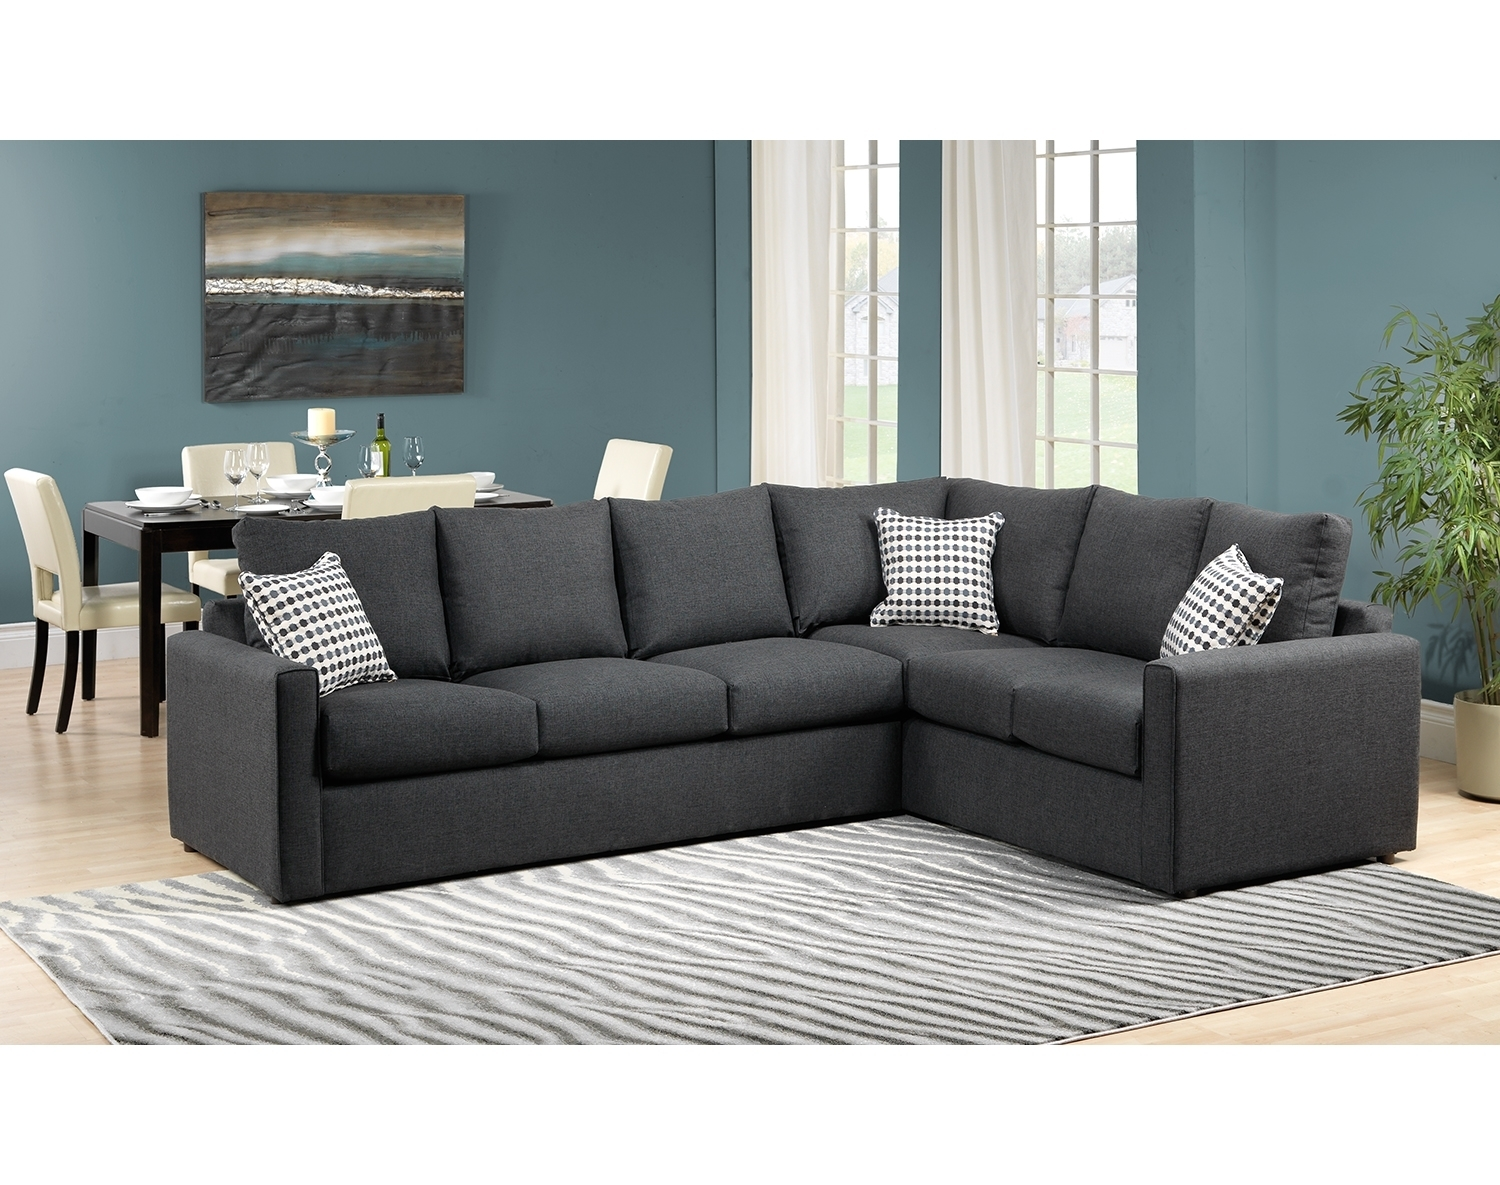 Sectional Sofa Bed Toronto – Image Of Ruostejarvi With Sectional Sofas In Toronto (Image 10 of 10)